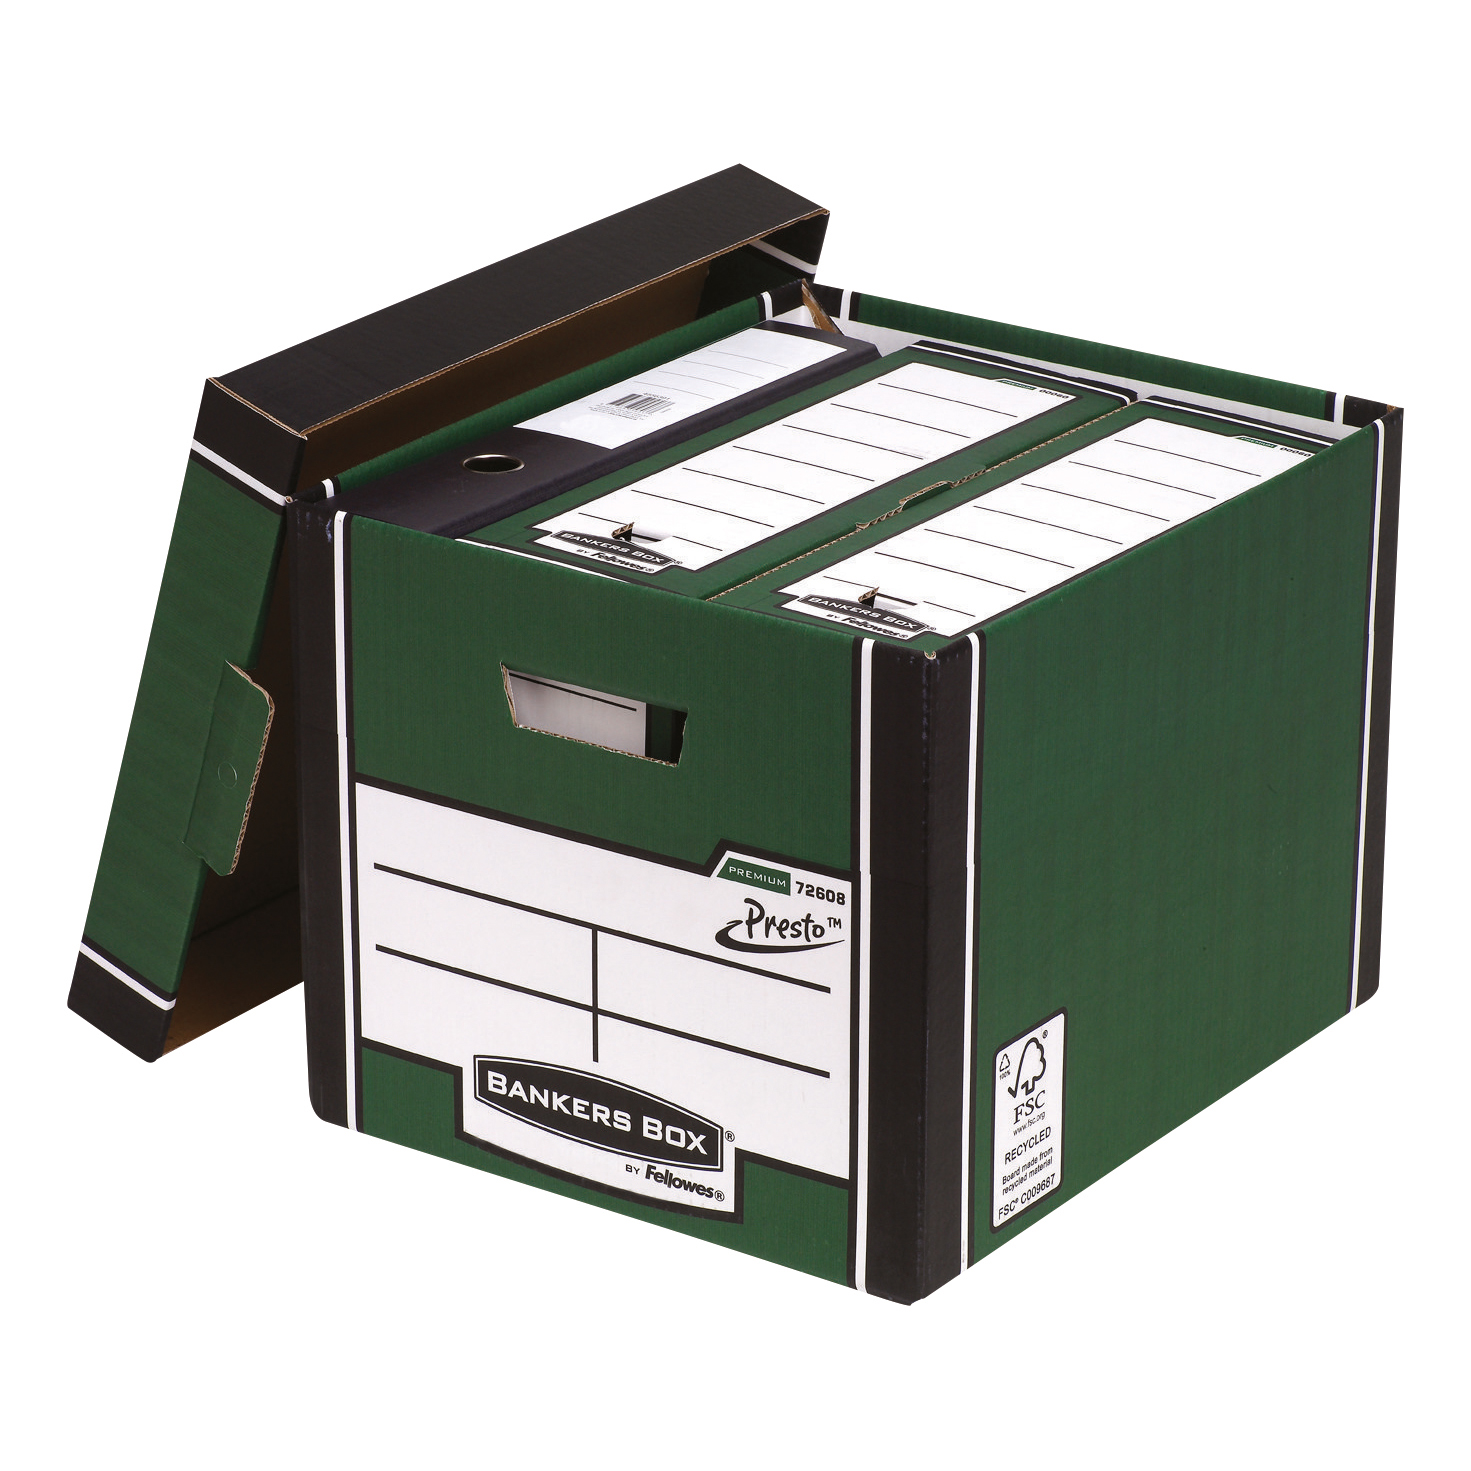 Bankers Box Premium Storage Box (Presto) Tall Green FSC Ref 7260802 [Pack 10]